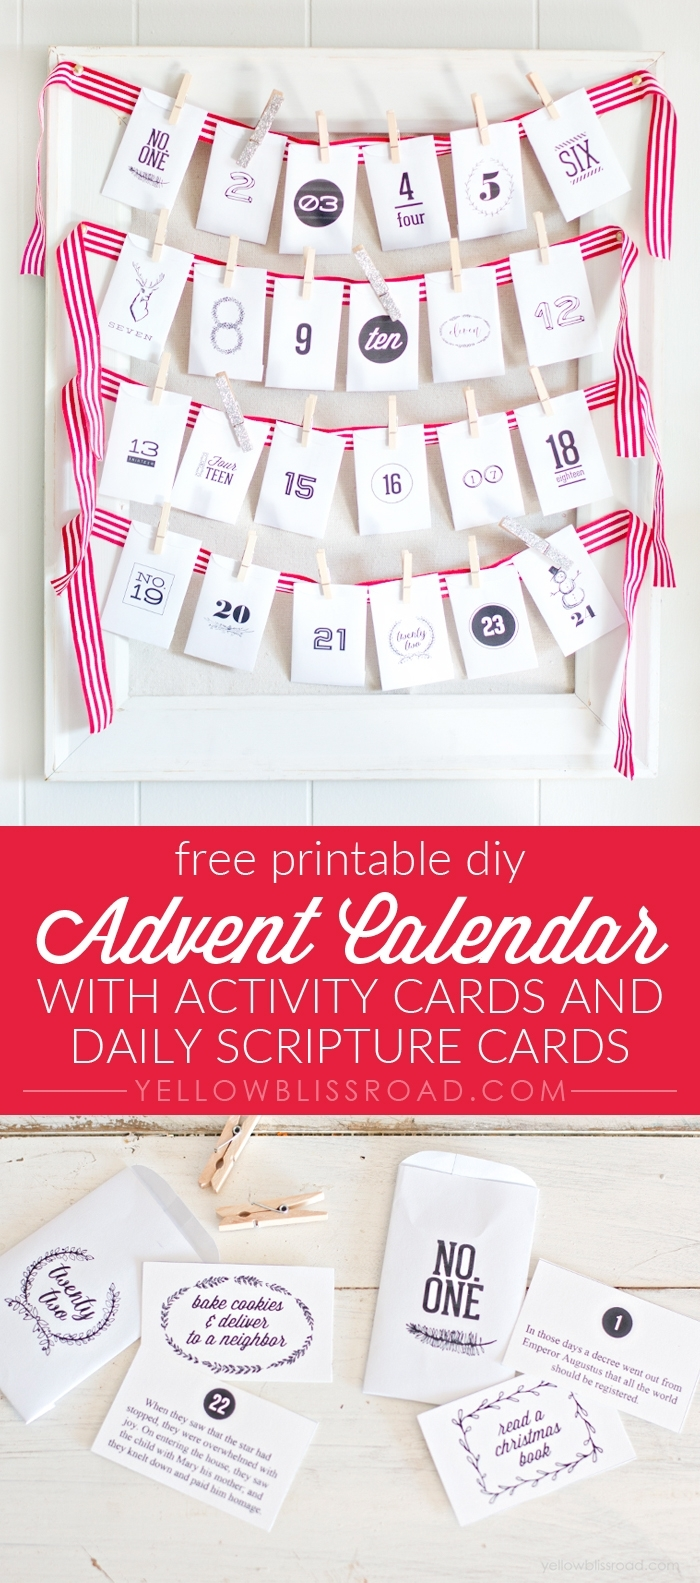 Free Printable Advent Calendar With Activity Ideas (Diy) inside Advent Calendar Gifts With Verses